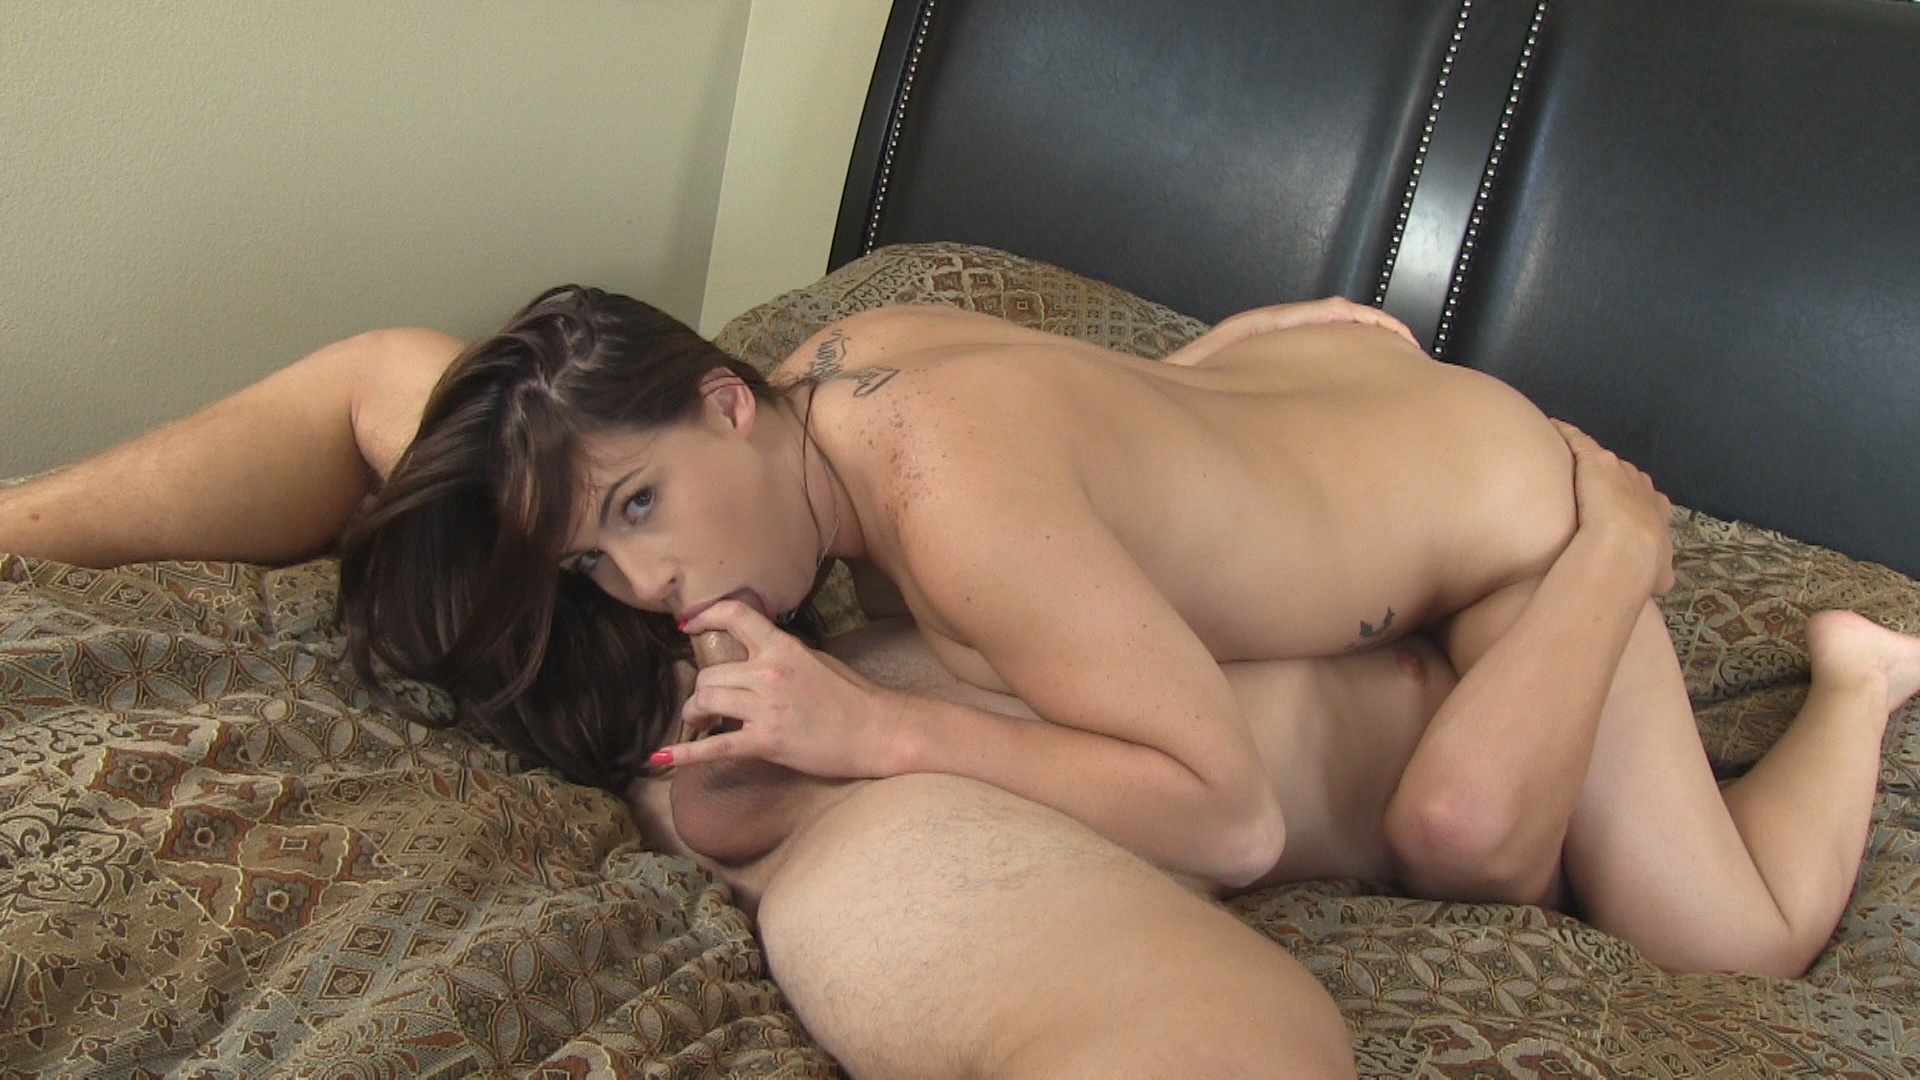 Morning Wood 3 xvideos